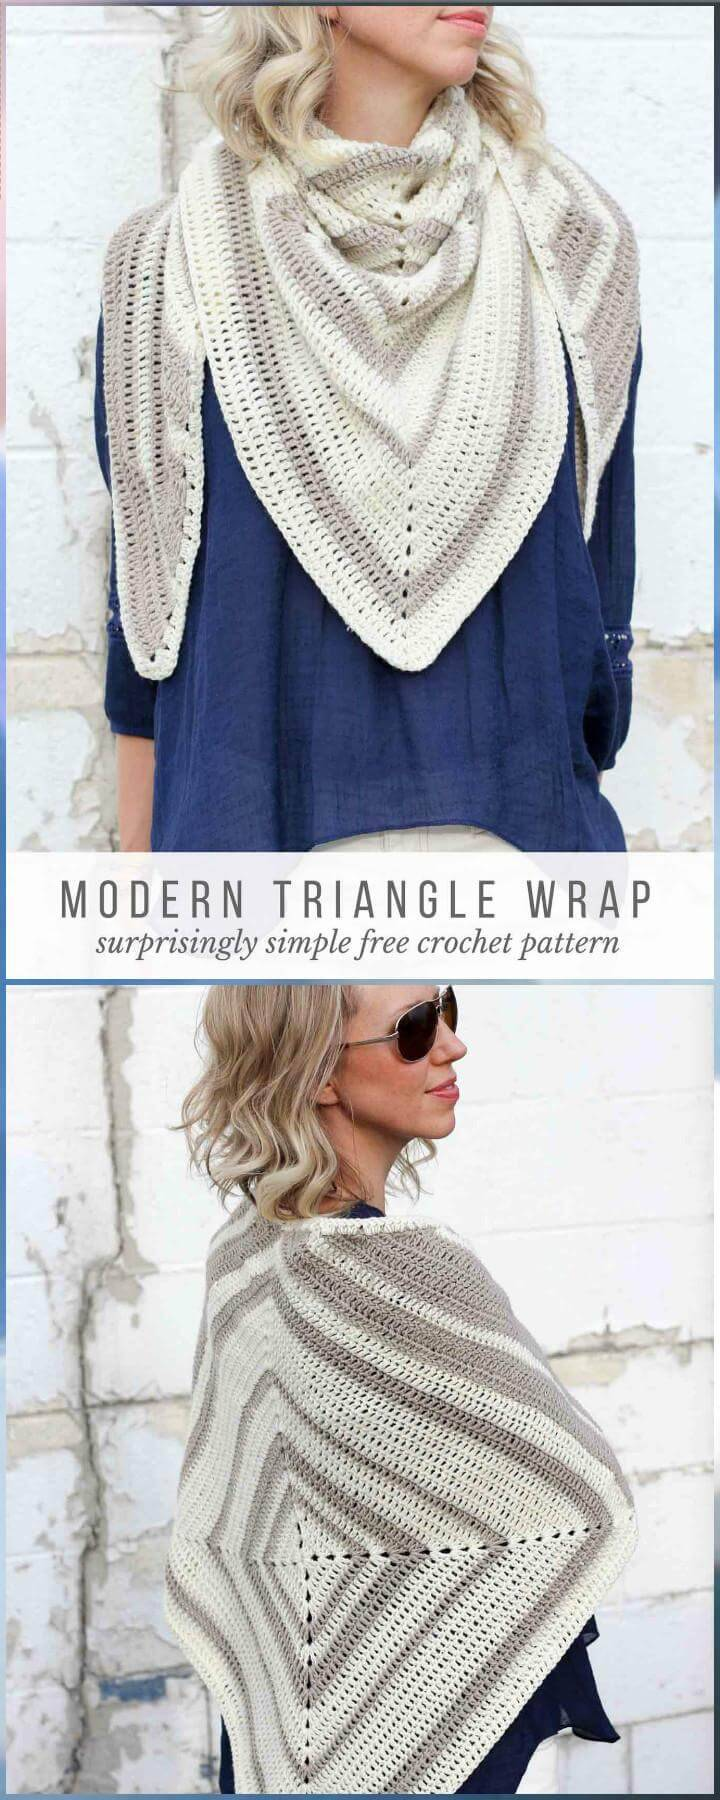 Crochet Triangle Wrap Free Pattern